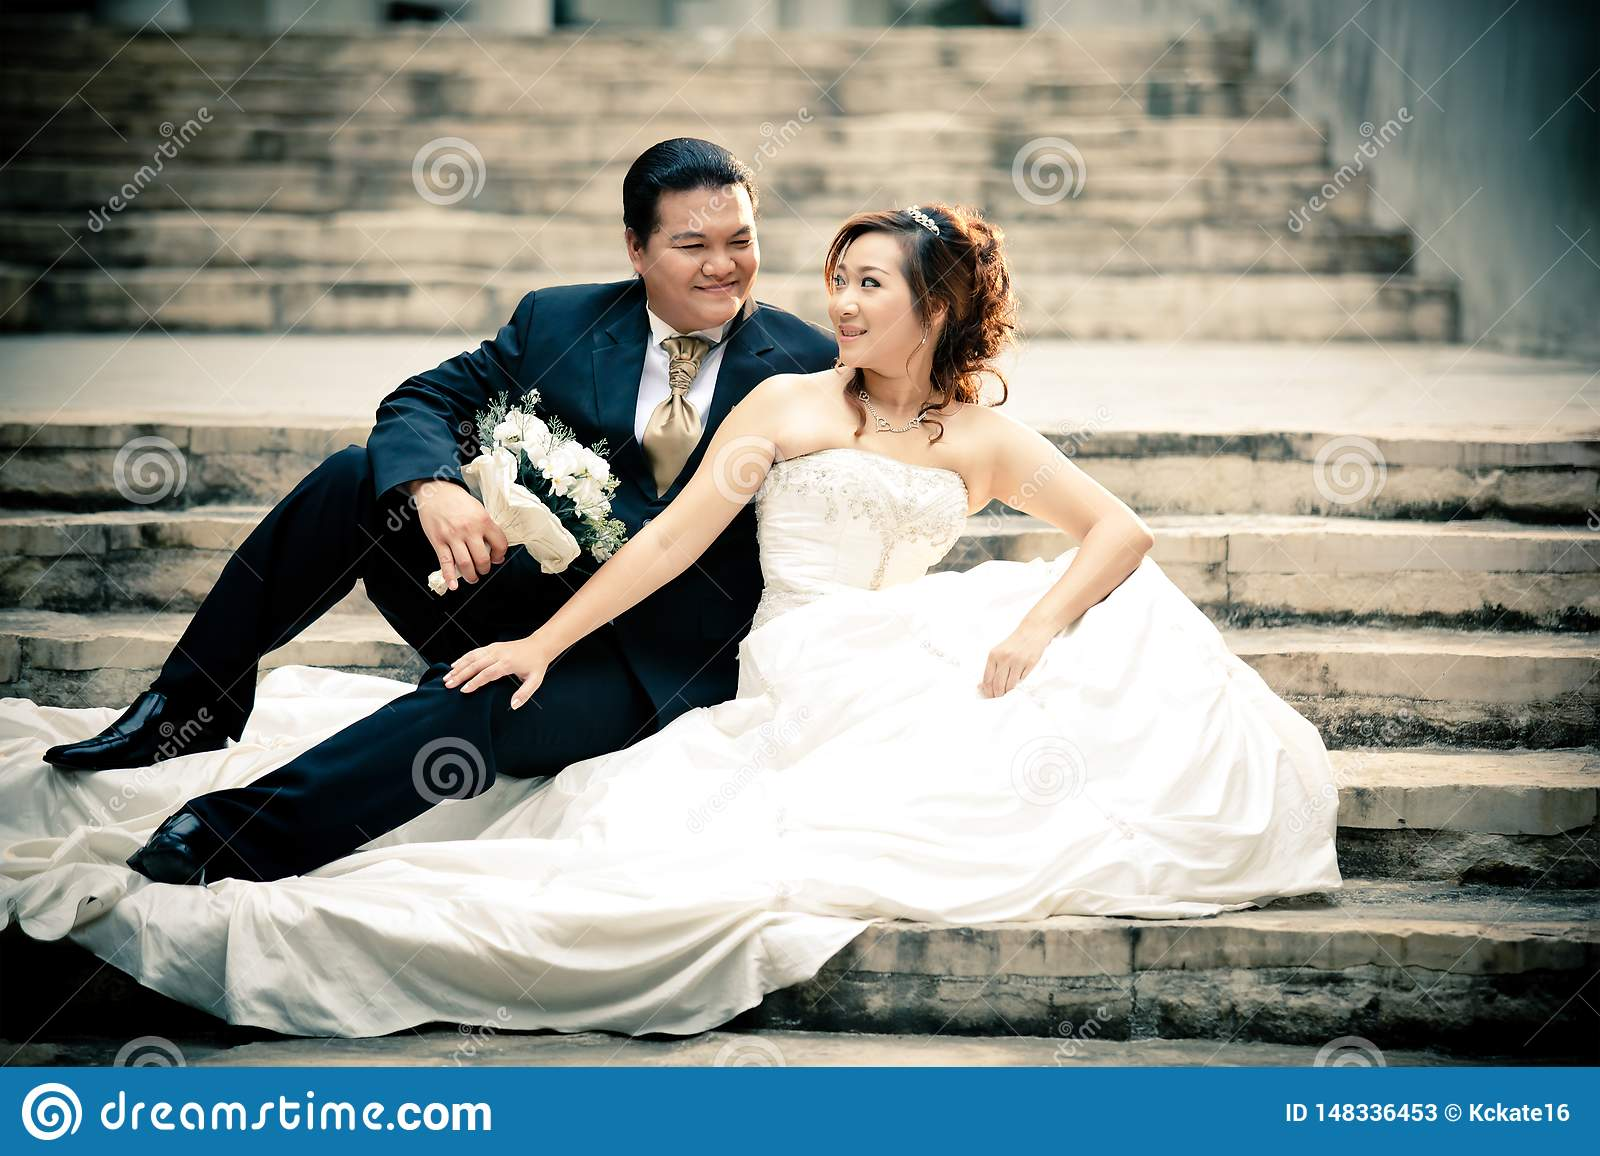 Wedding couple enjoying romantic moments outsides on a summer. Happy bride and groom on their wedding.